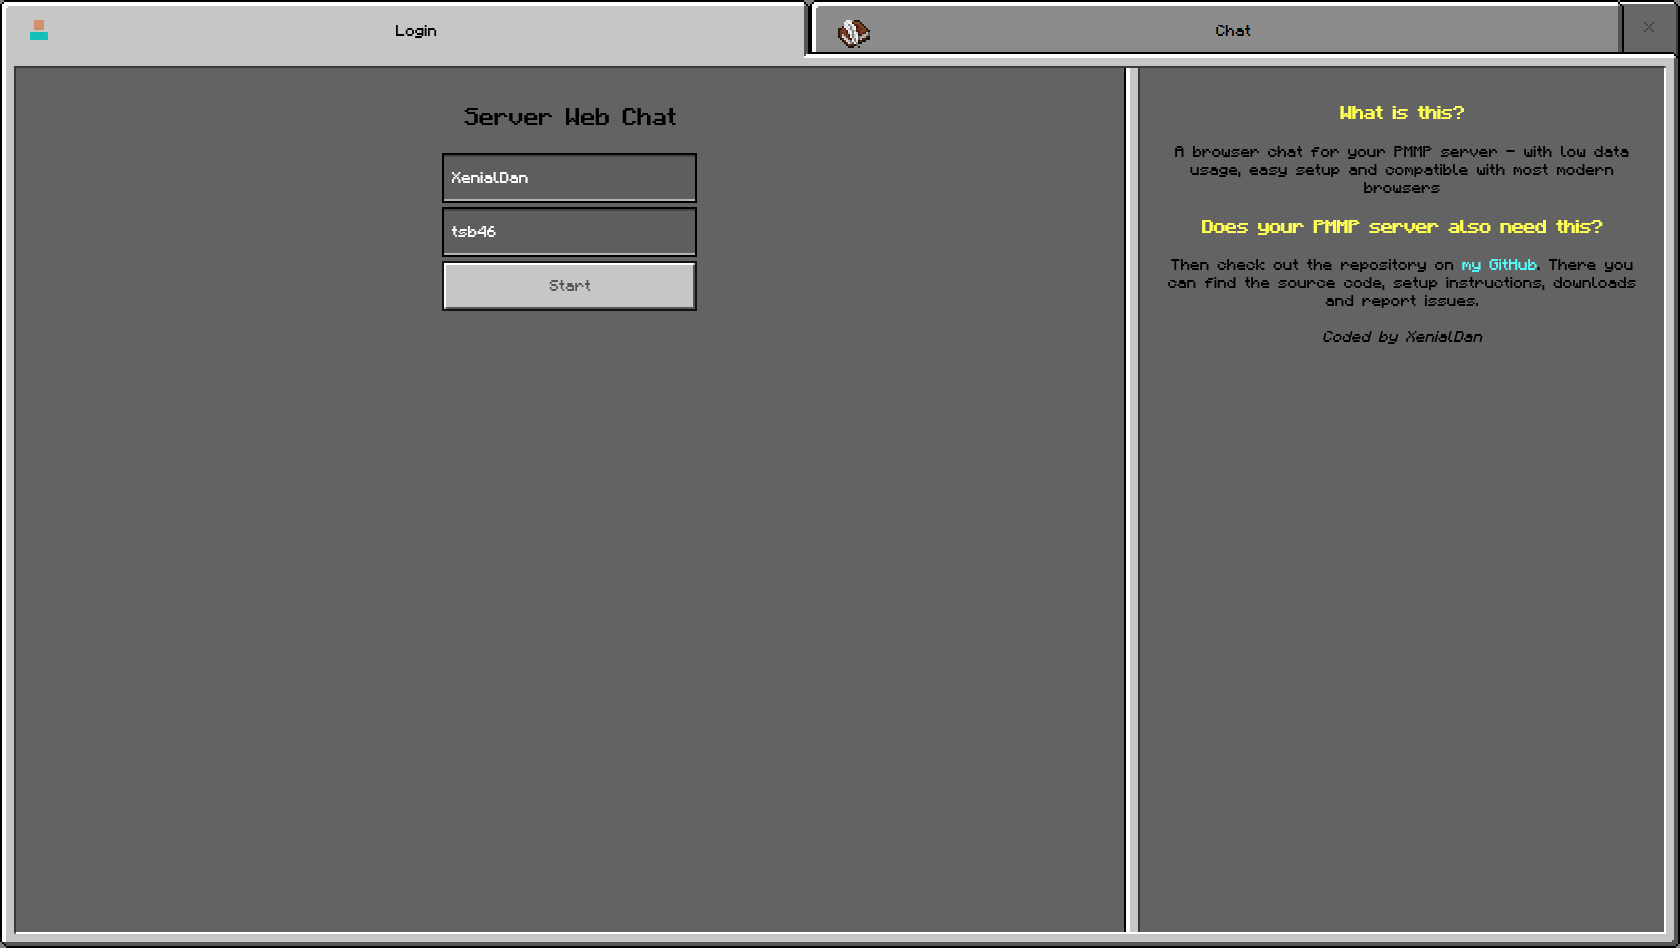 The login interface of the website